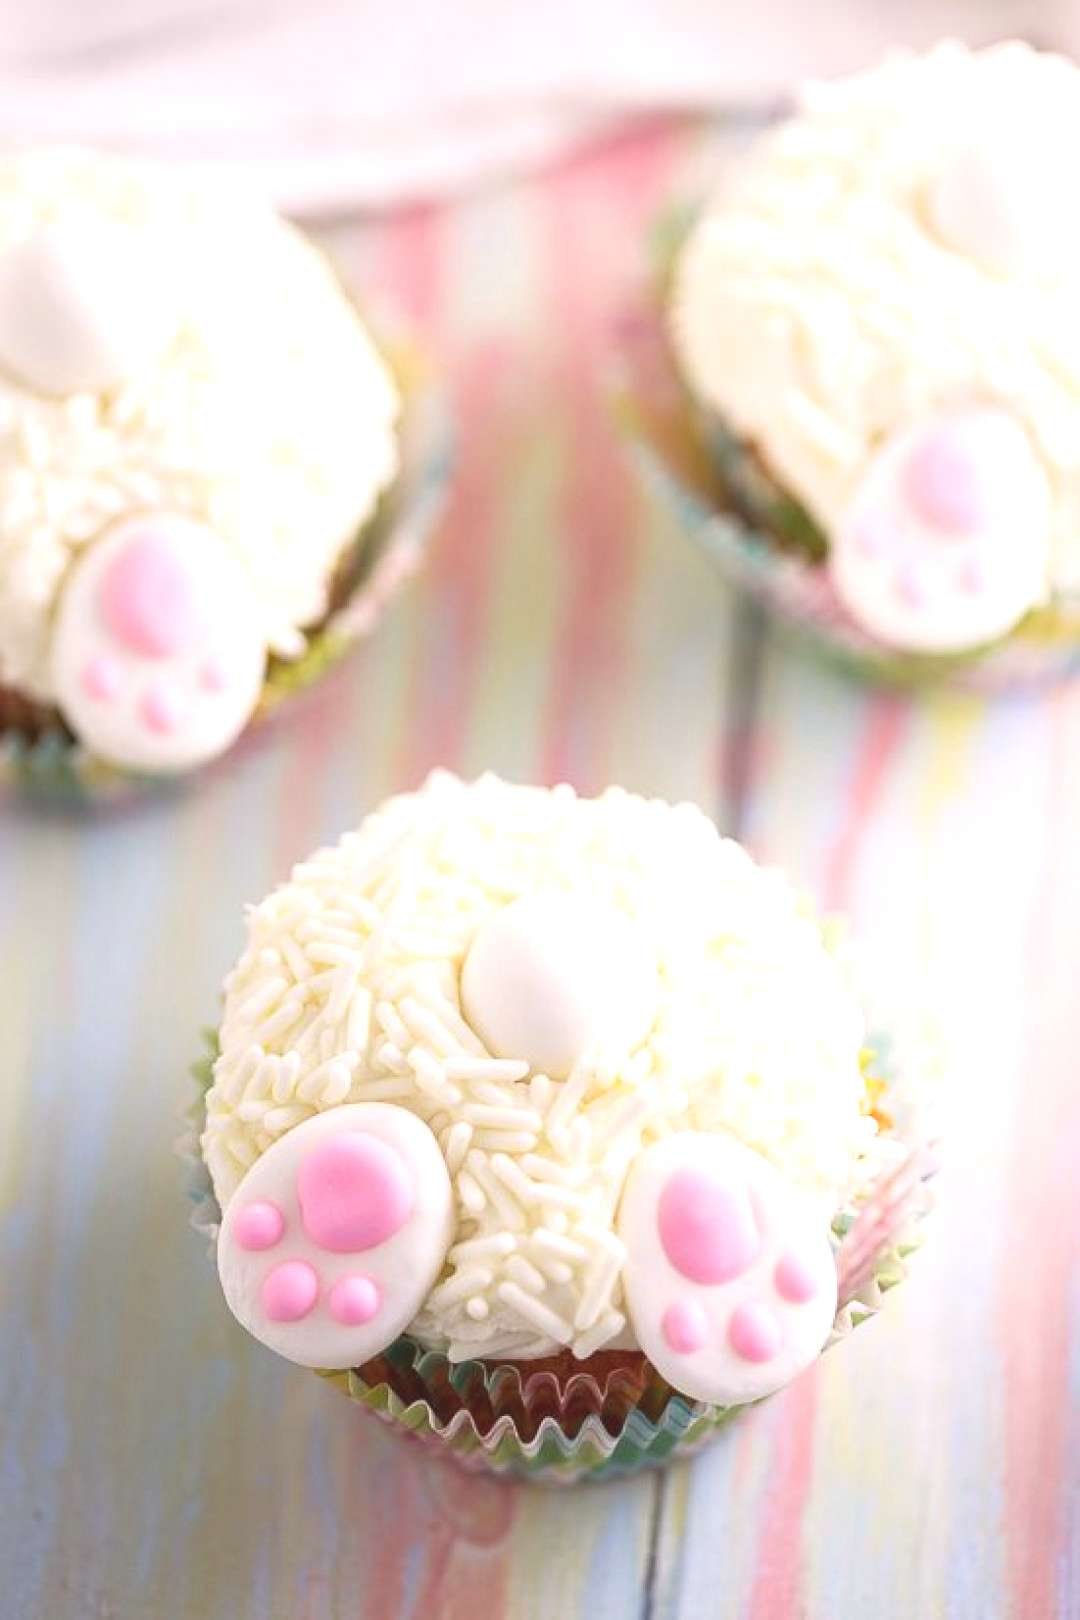 Easter dessert recipes cookies, sweets, cakes - ...#cakes